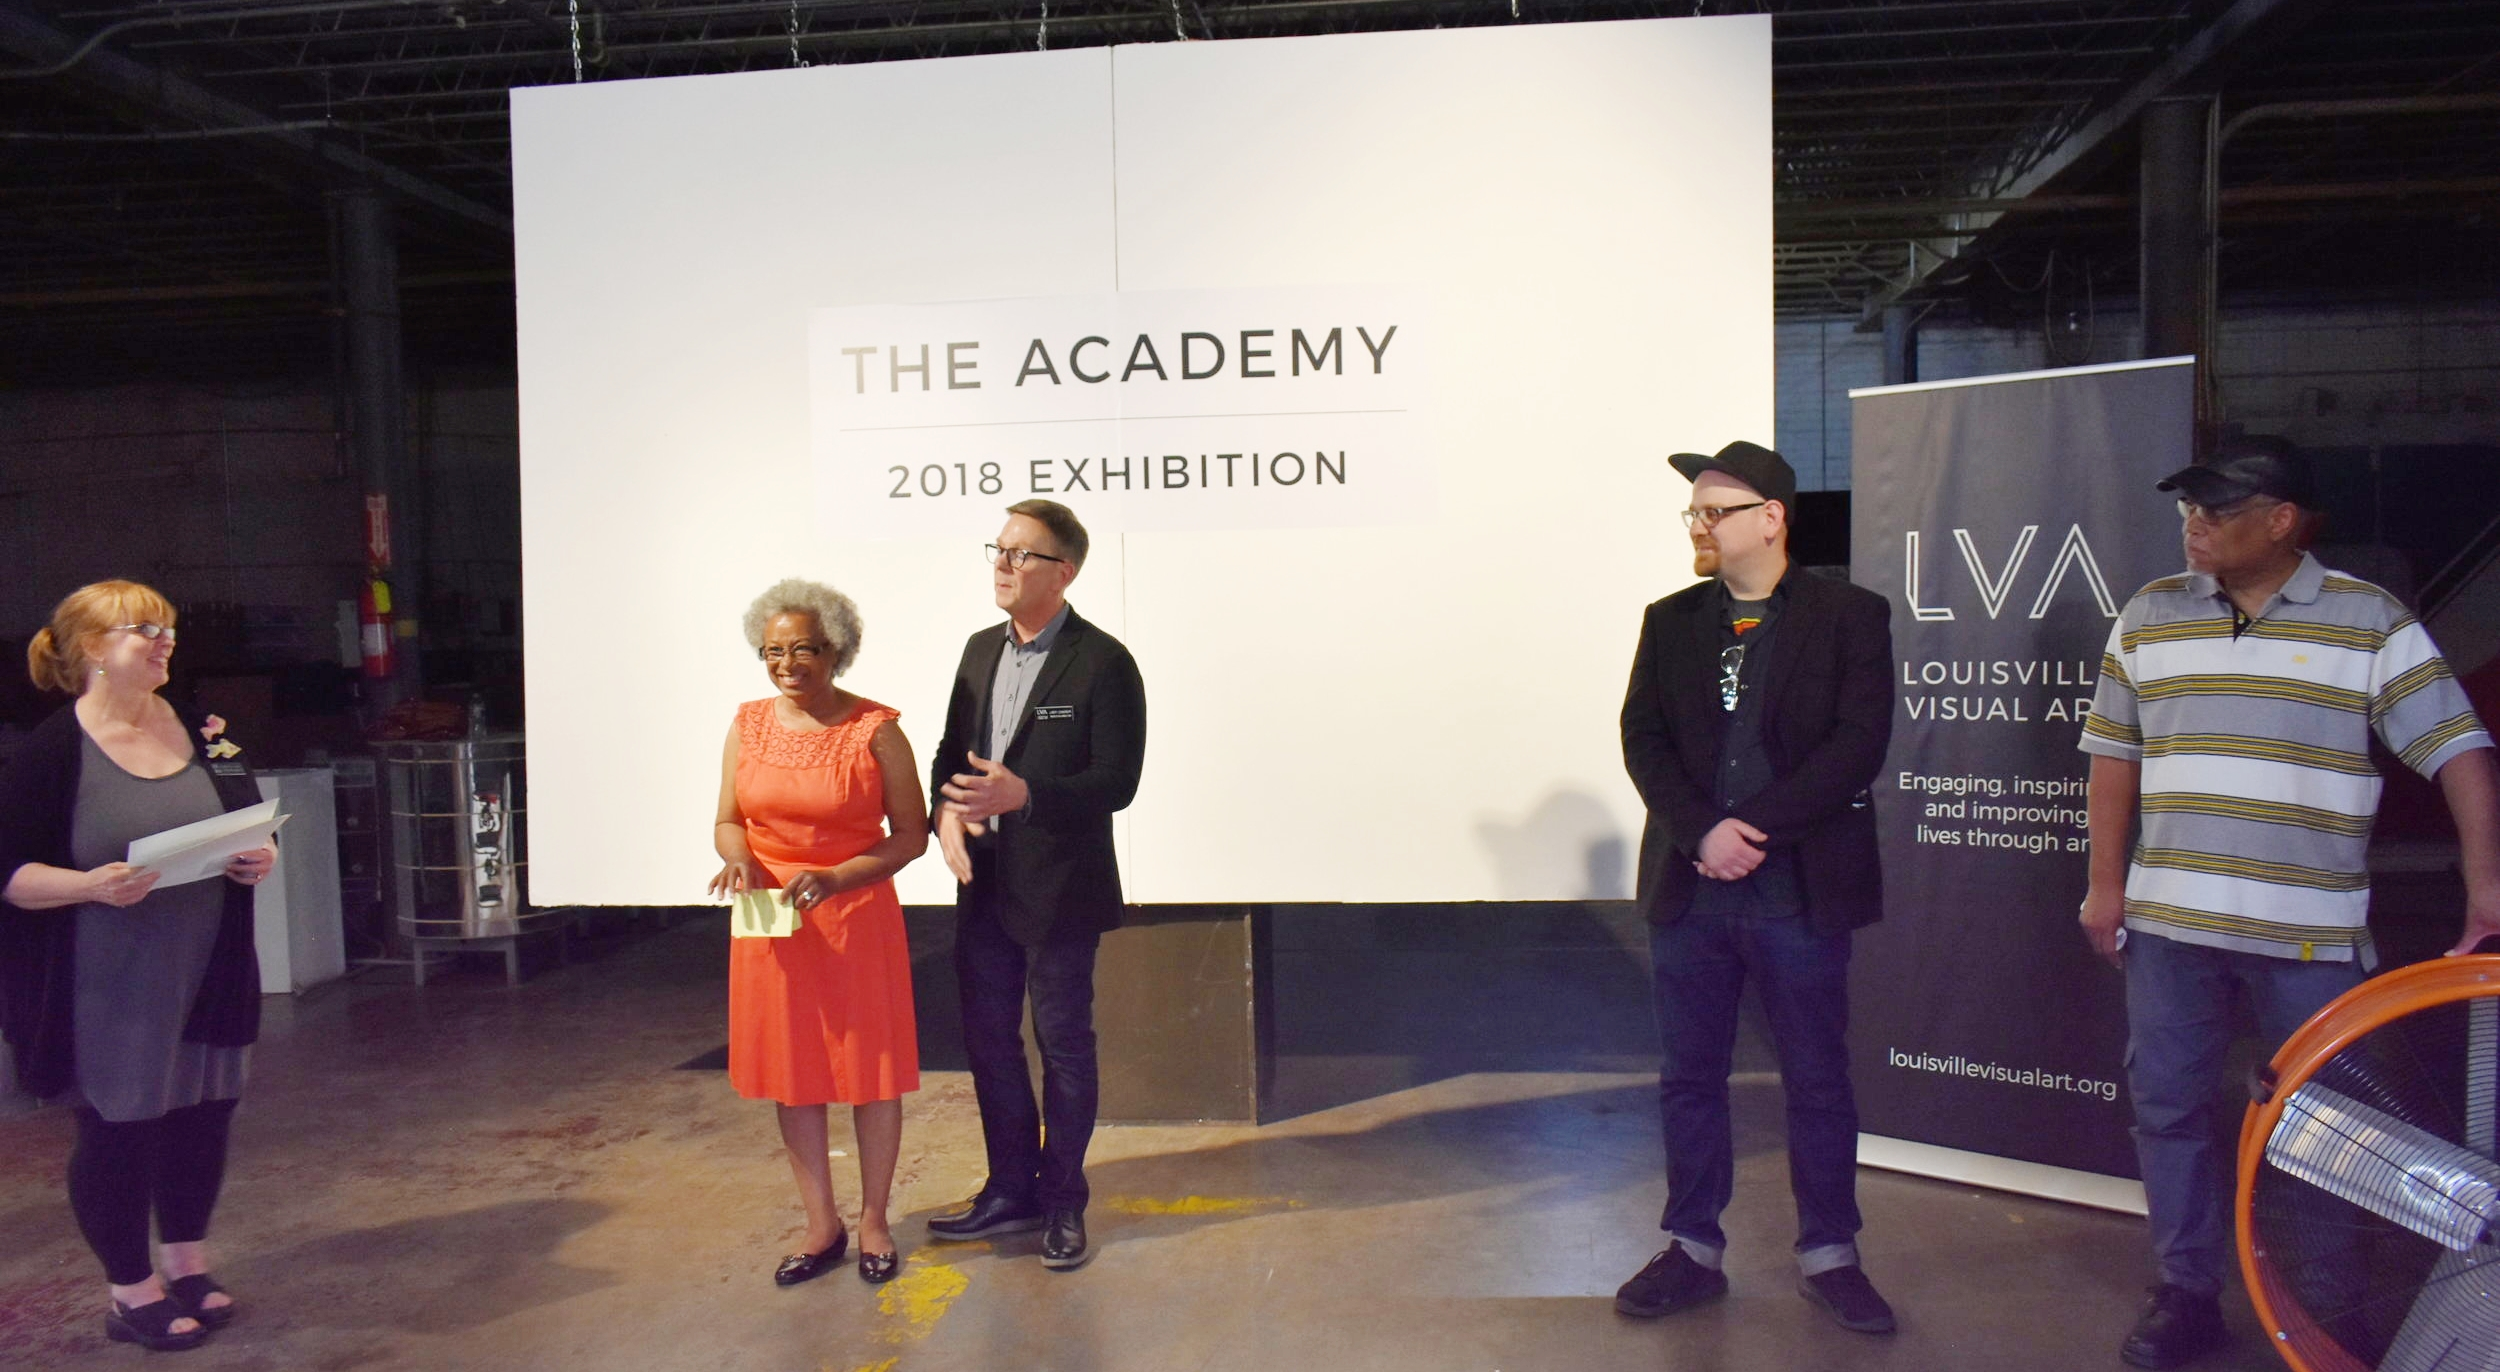 LVA's CFAC & Academy Director Annette Cable, Wilma Bethel, LVA Executive Director Lindy Casebier, Andrew Preston, and William Duffy presented awards to Academy graduates.